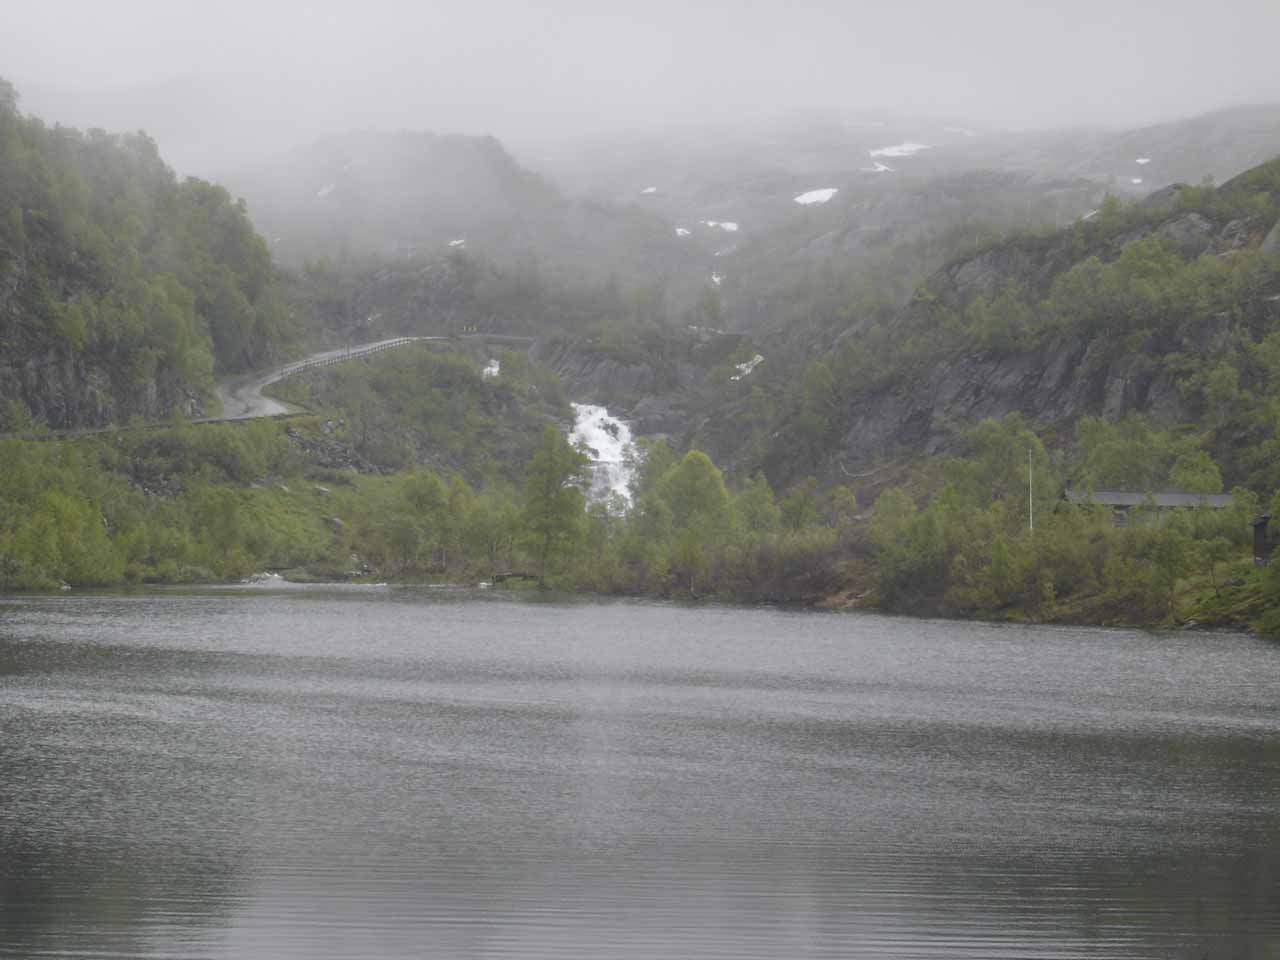 Looking across a moorish lake towards an attractive waterfall from just beneath the rain clouds